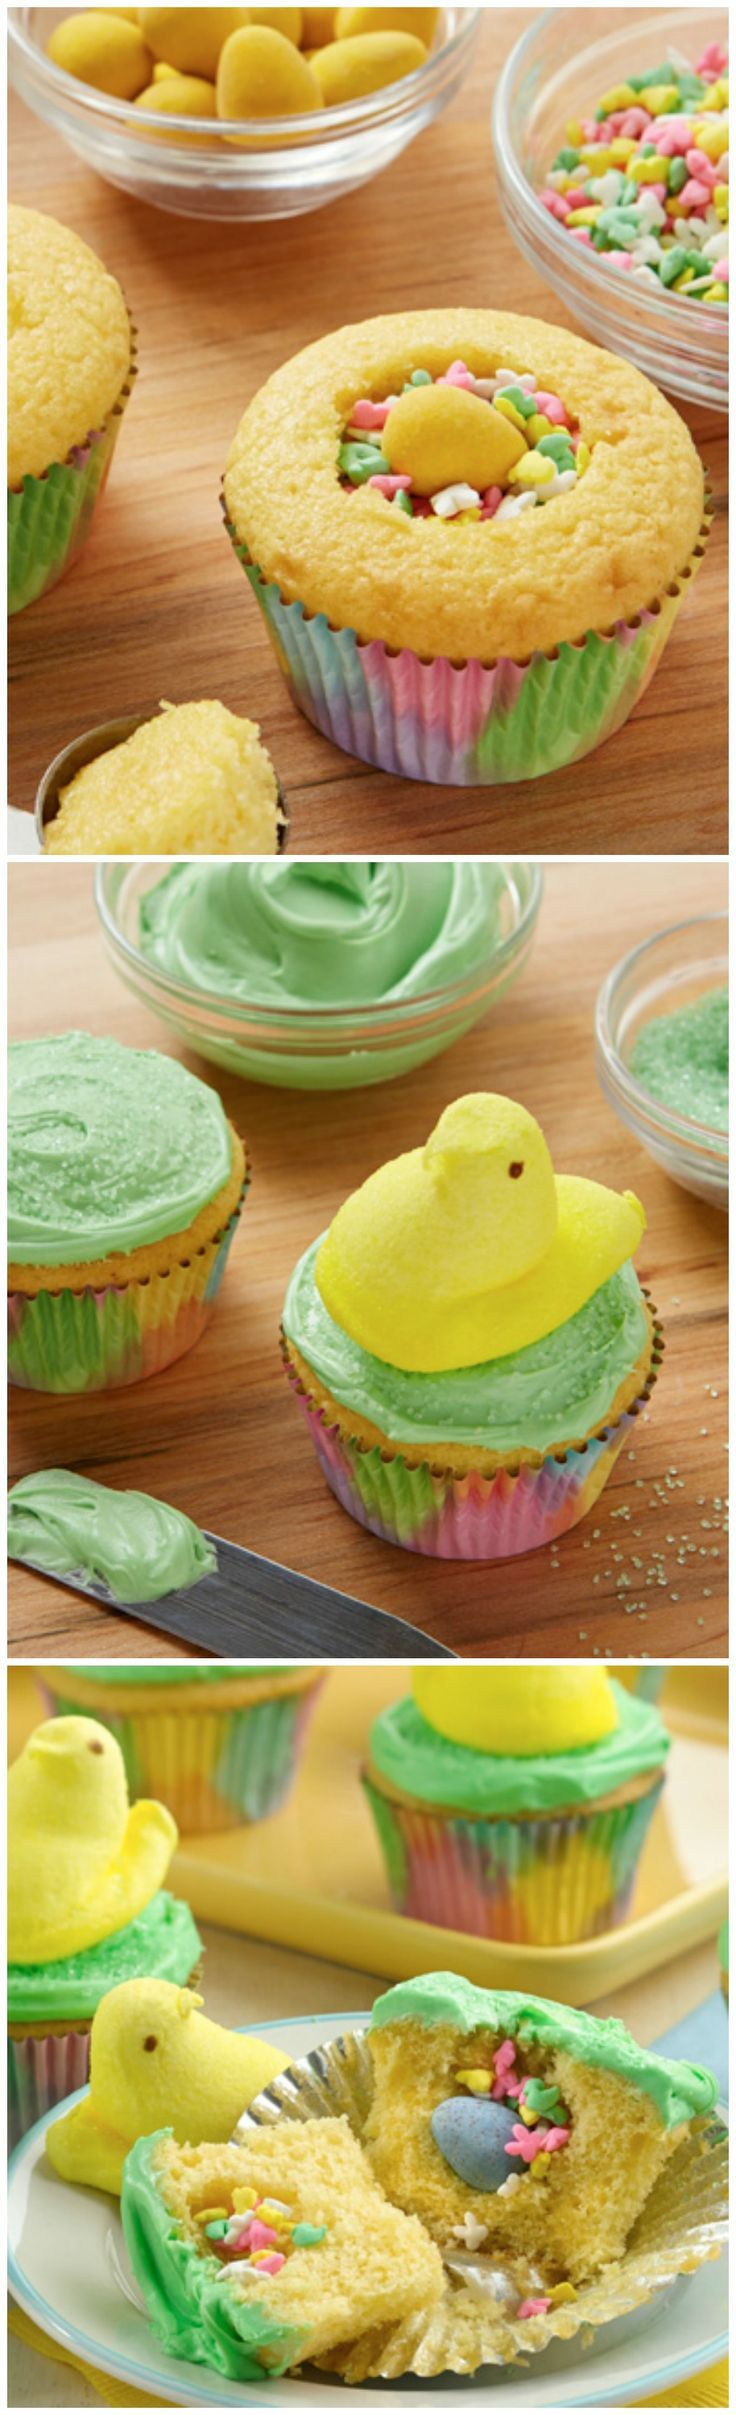 PEEPS Chick Surprise-Inside Cupcakes - Thinking I might make these!